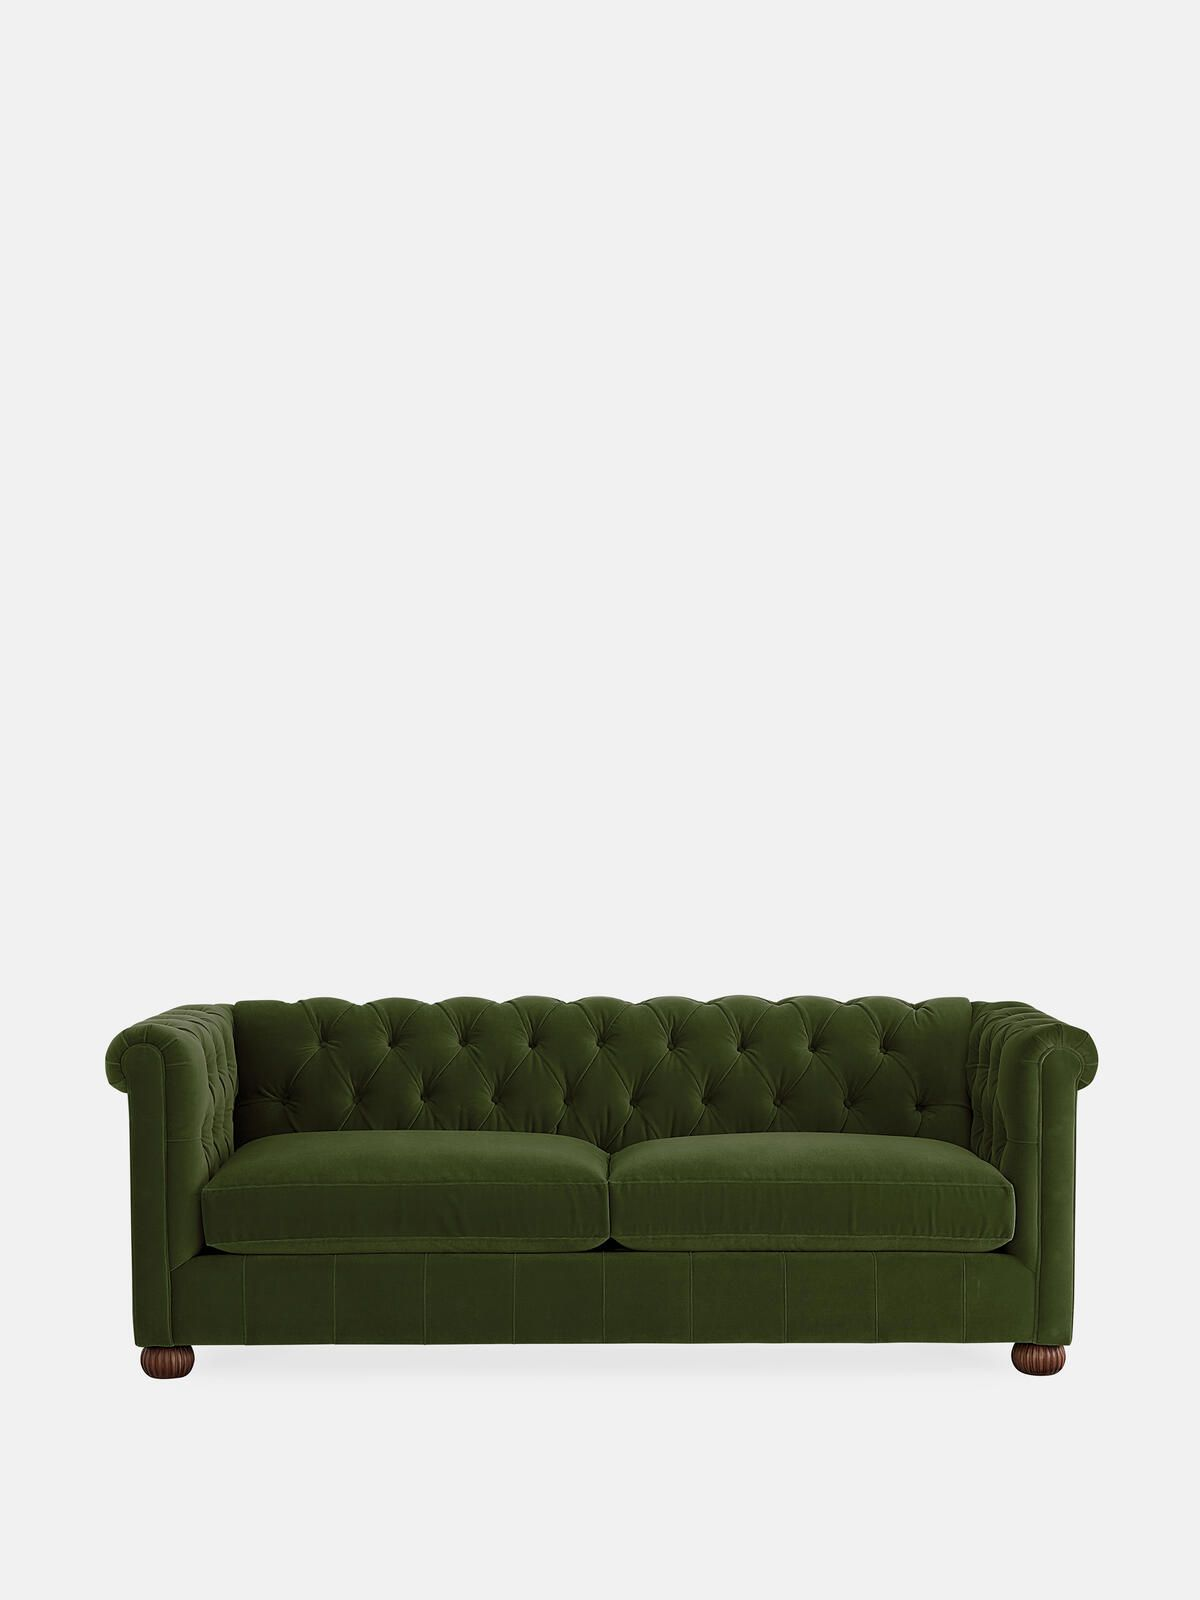 Aderyn Chesterfield 3 Seater Sofa